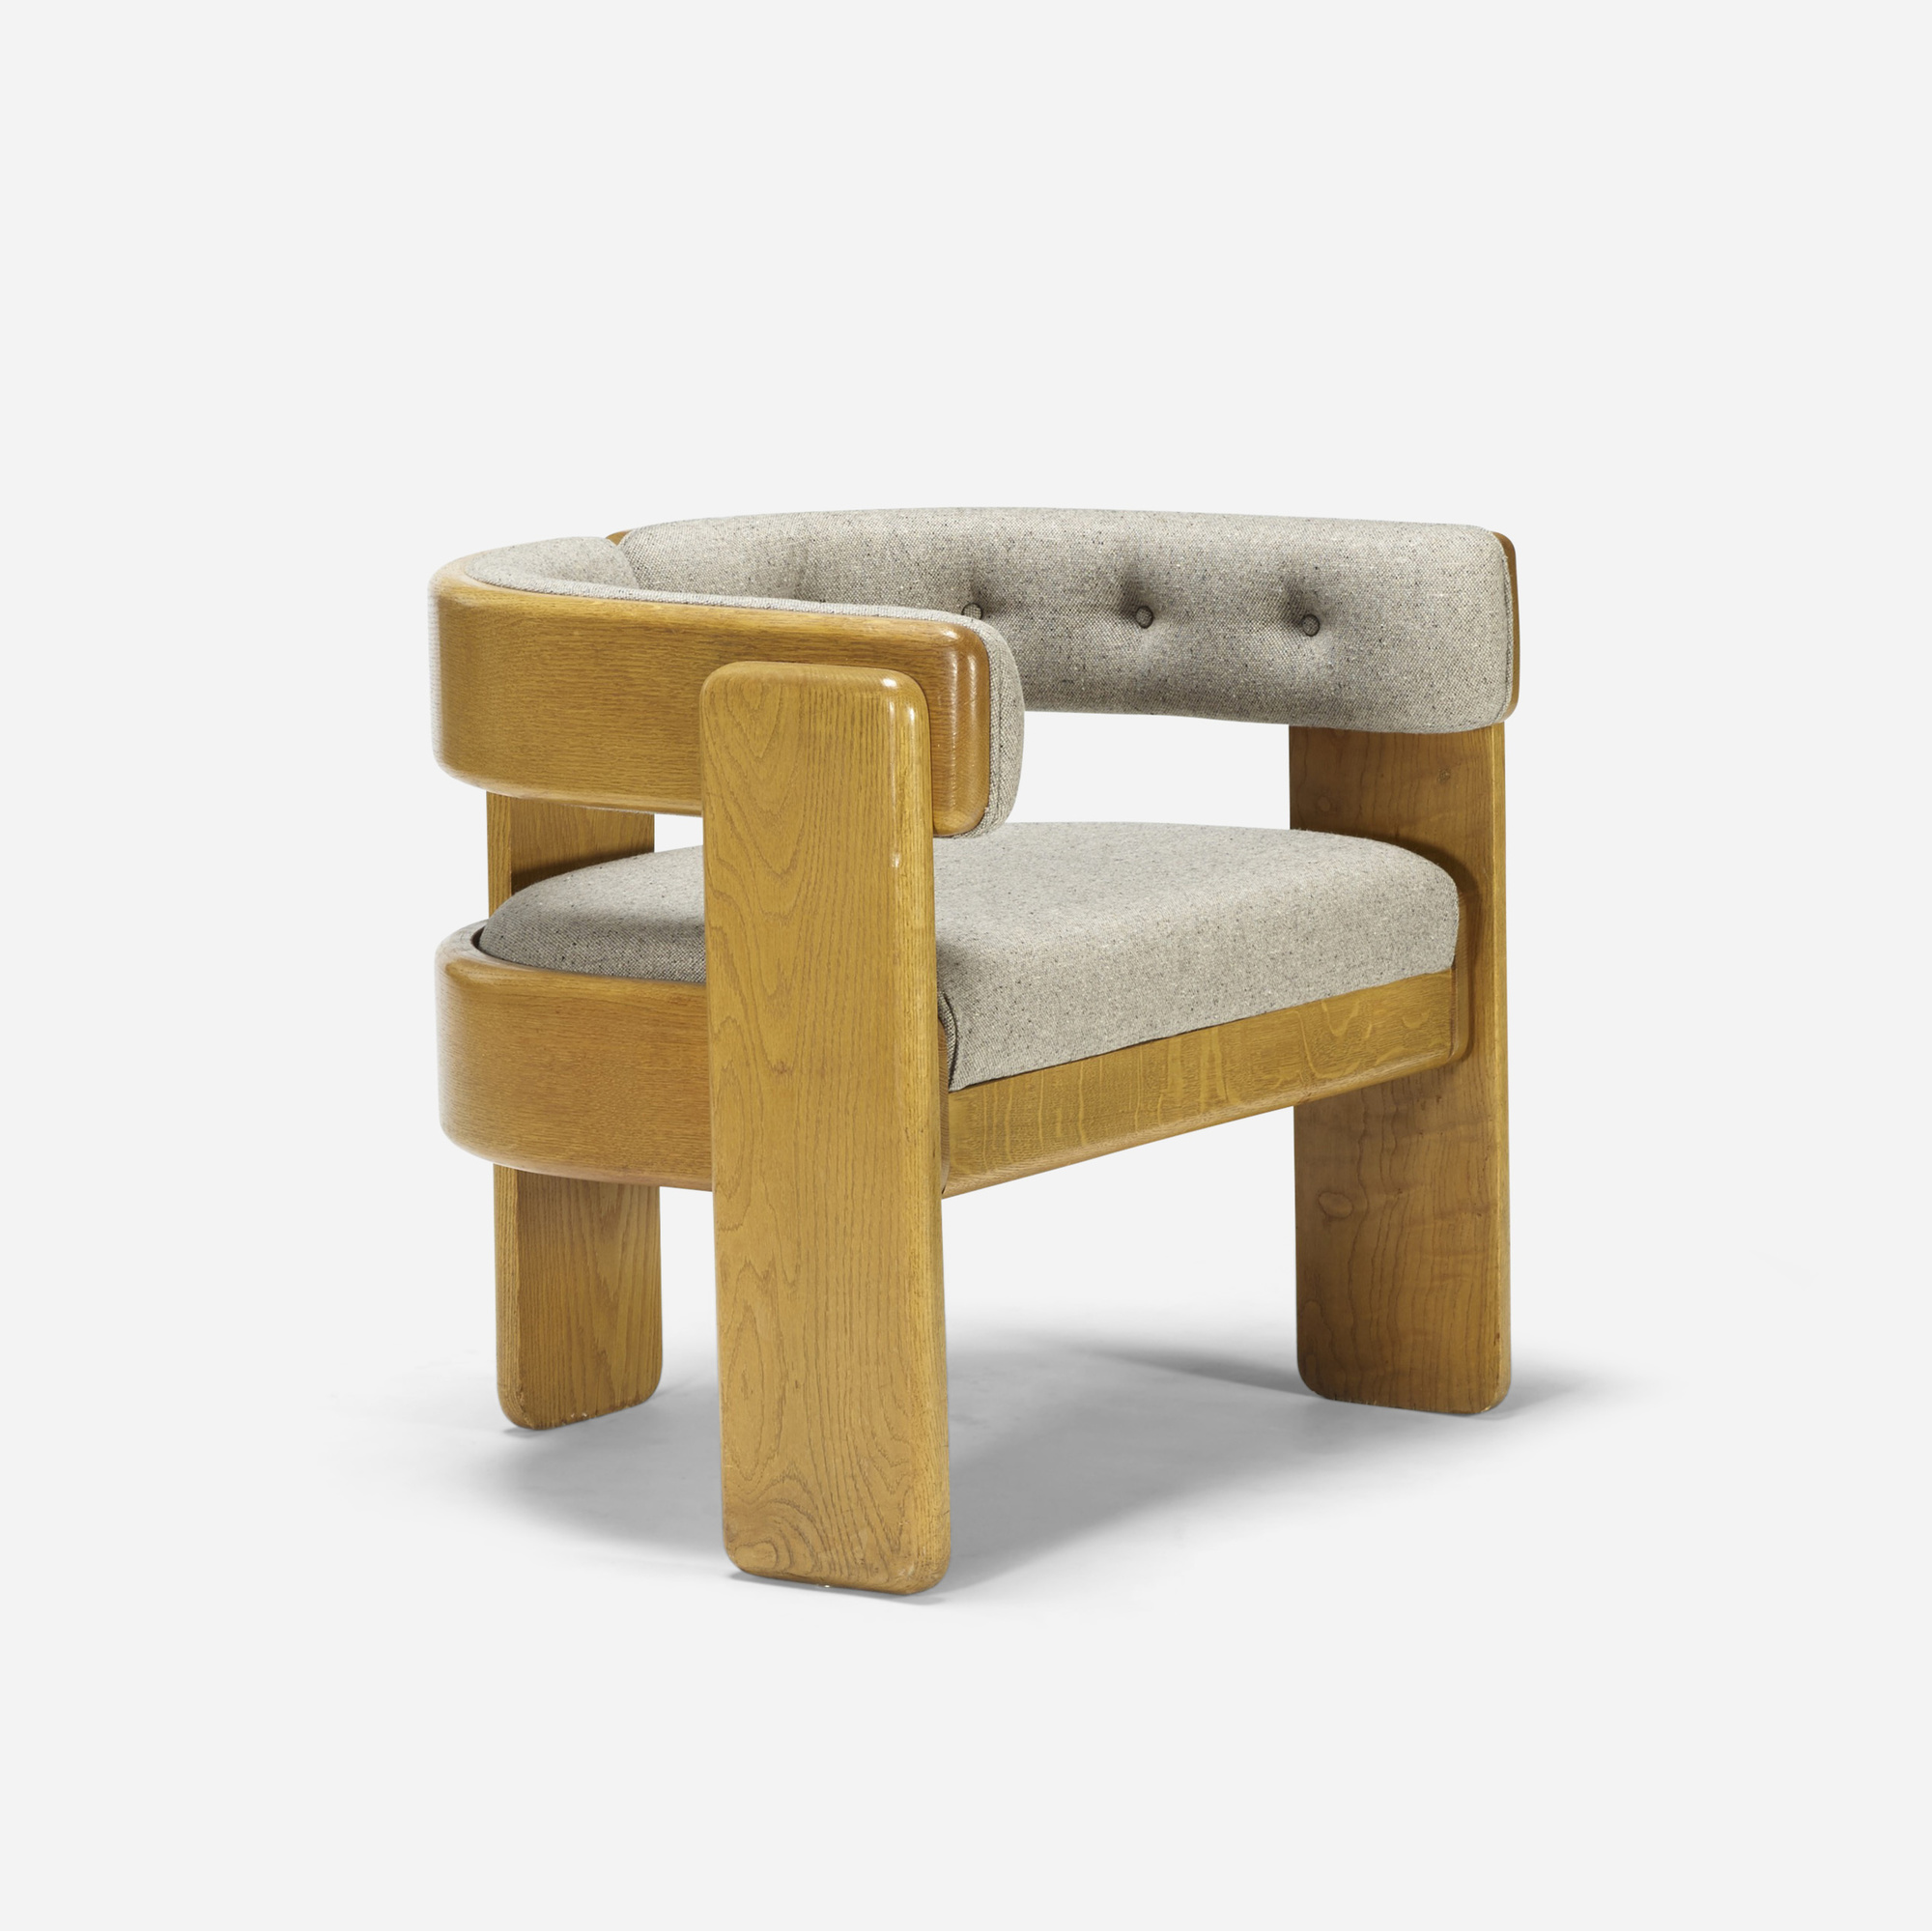 715: Afra and Tobia Scarpa / lounge chair (2 of 2)